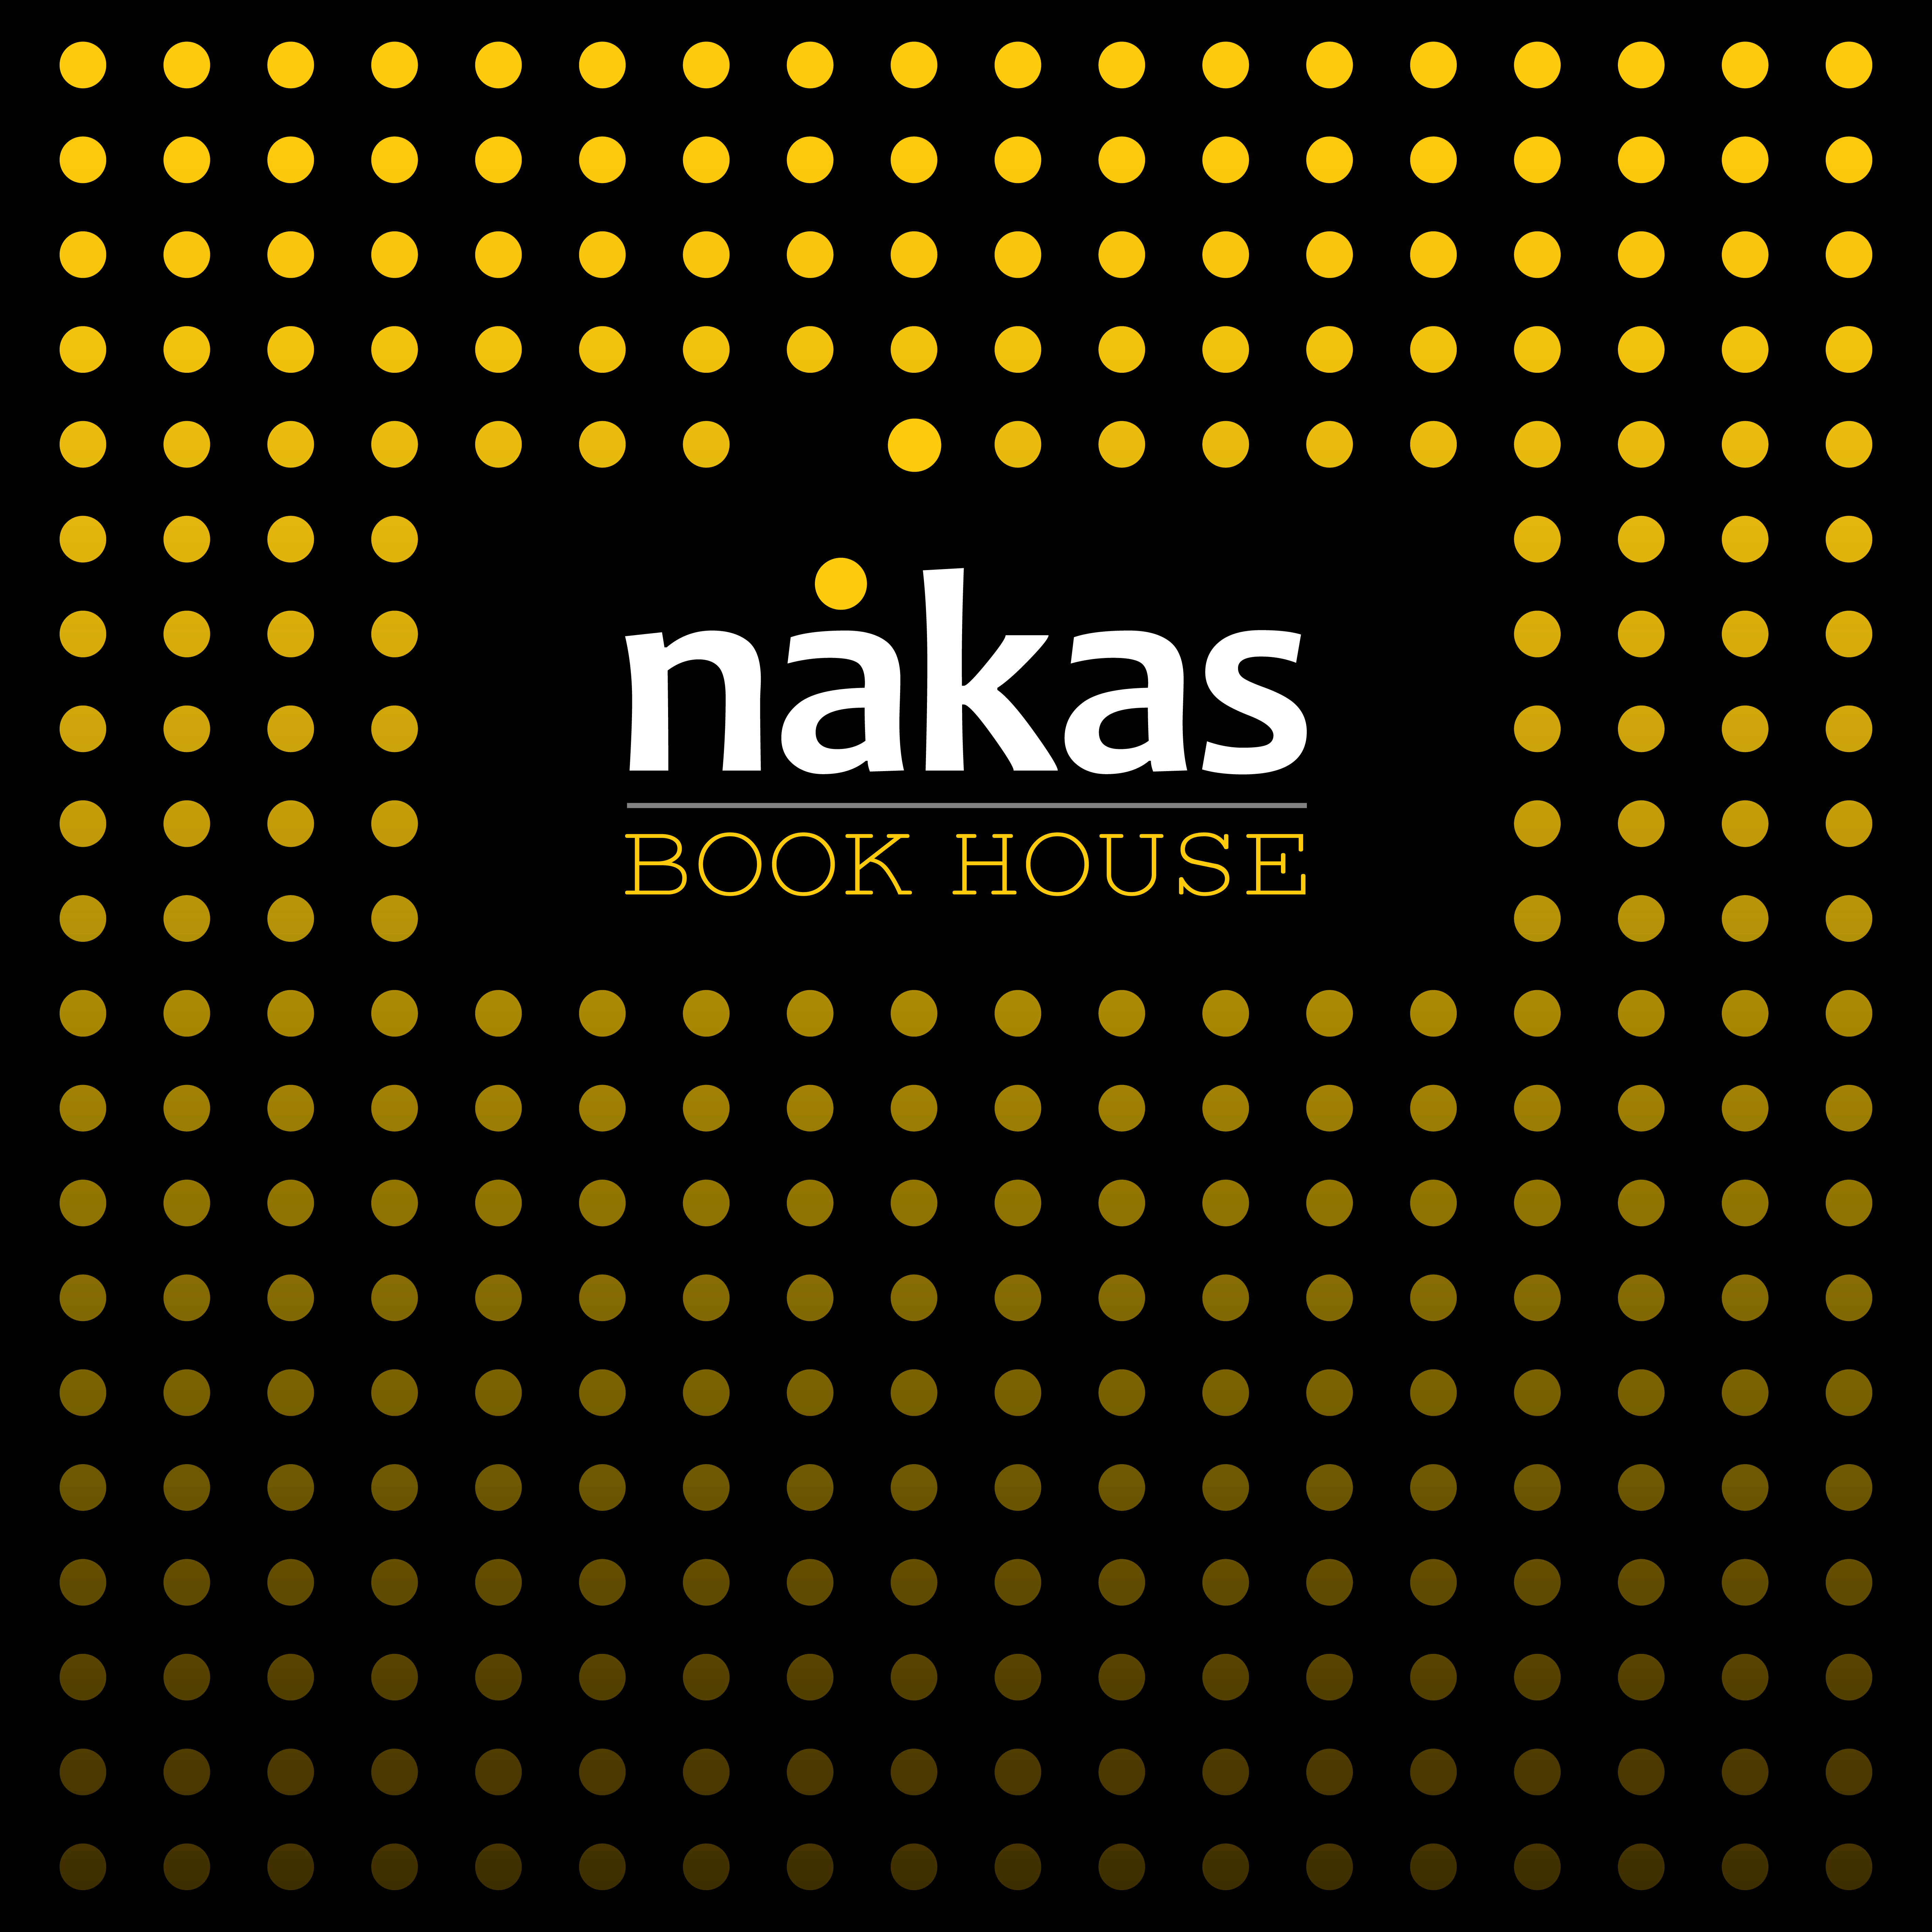 NEW NAKAS BOOK HOUSE!